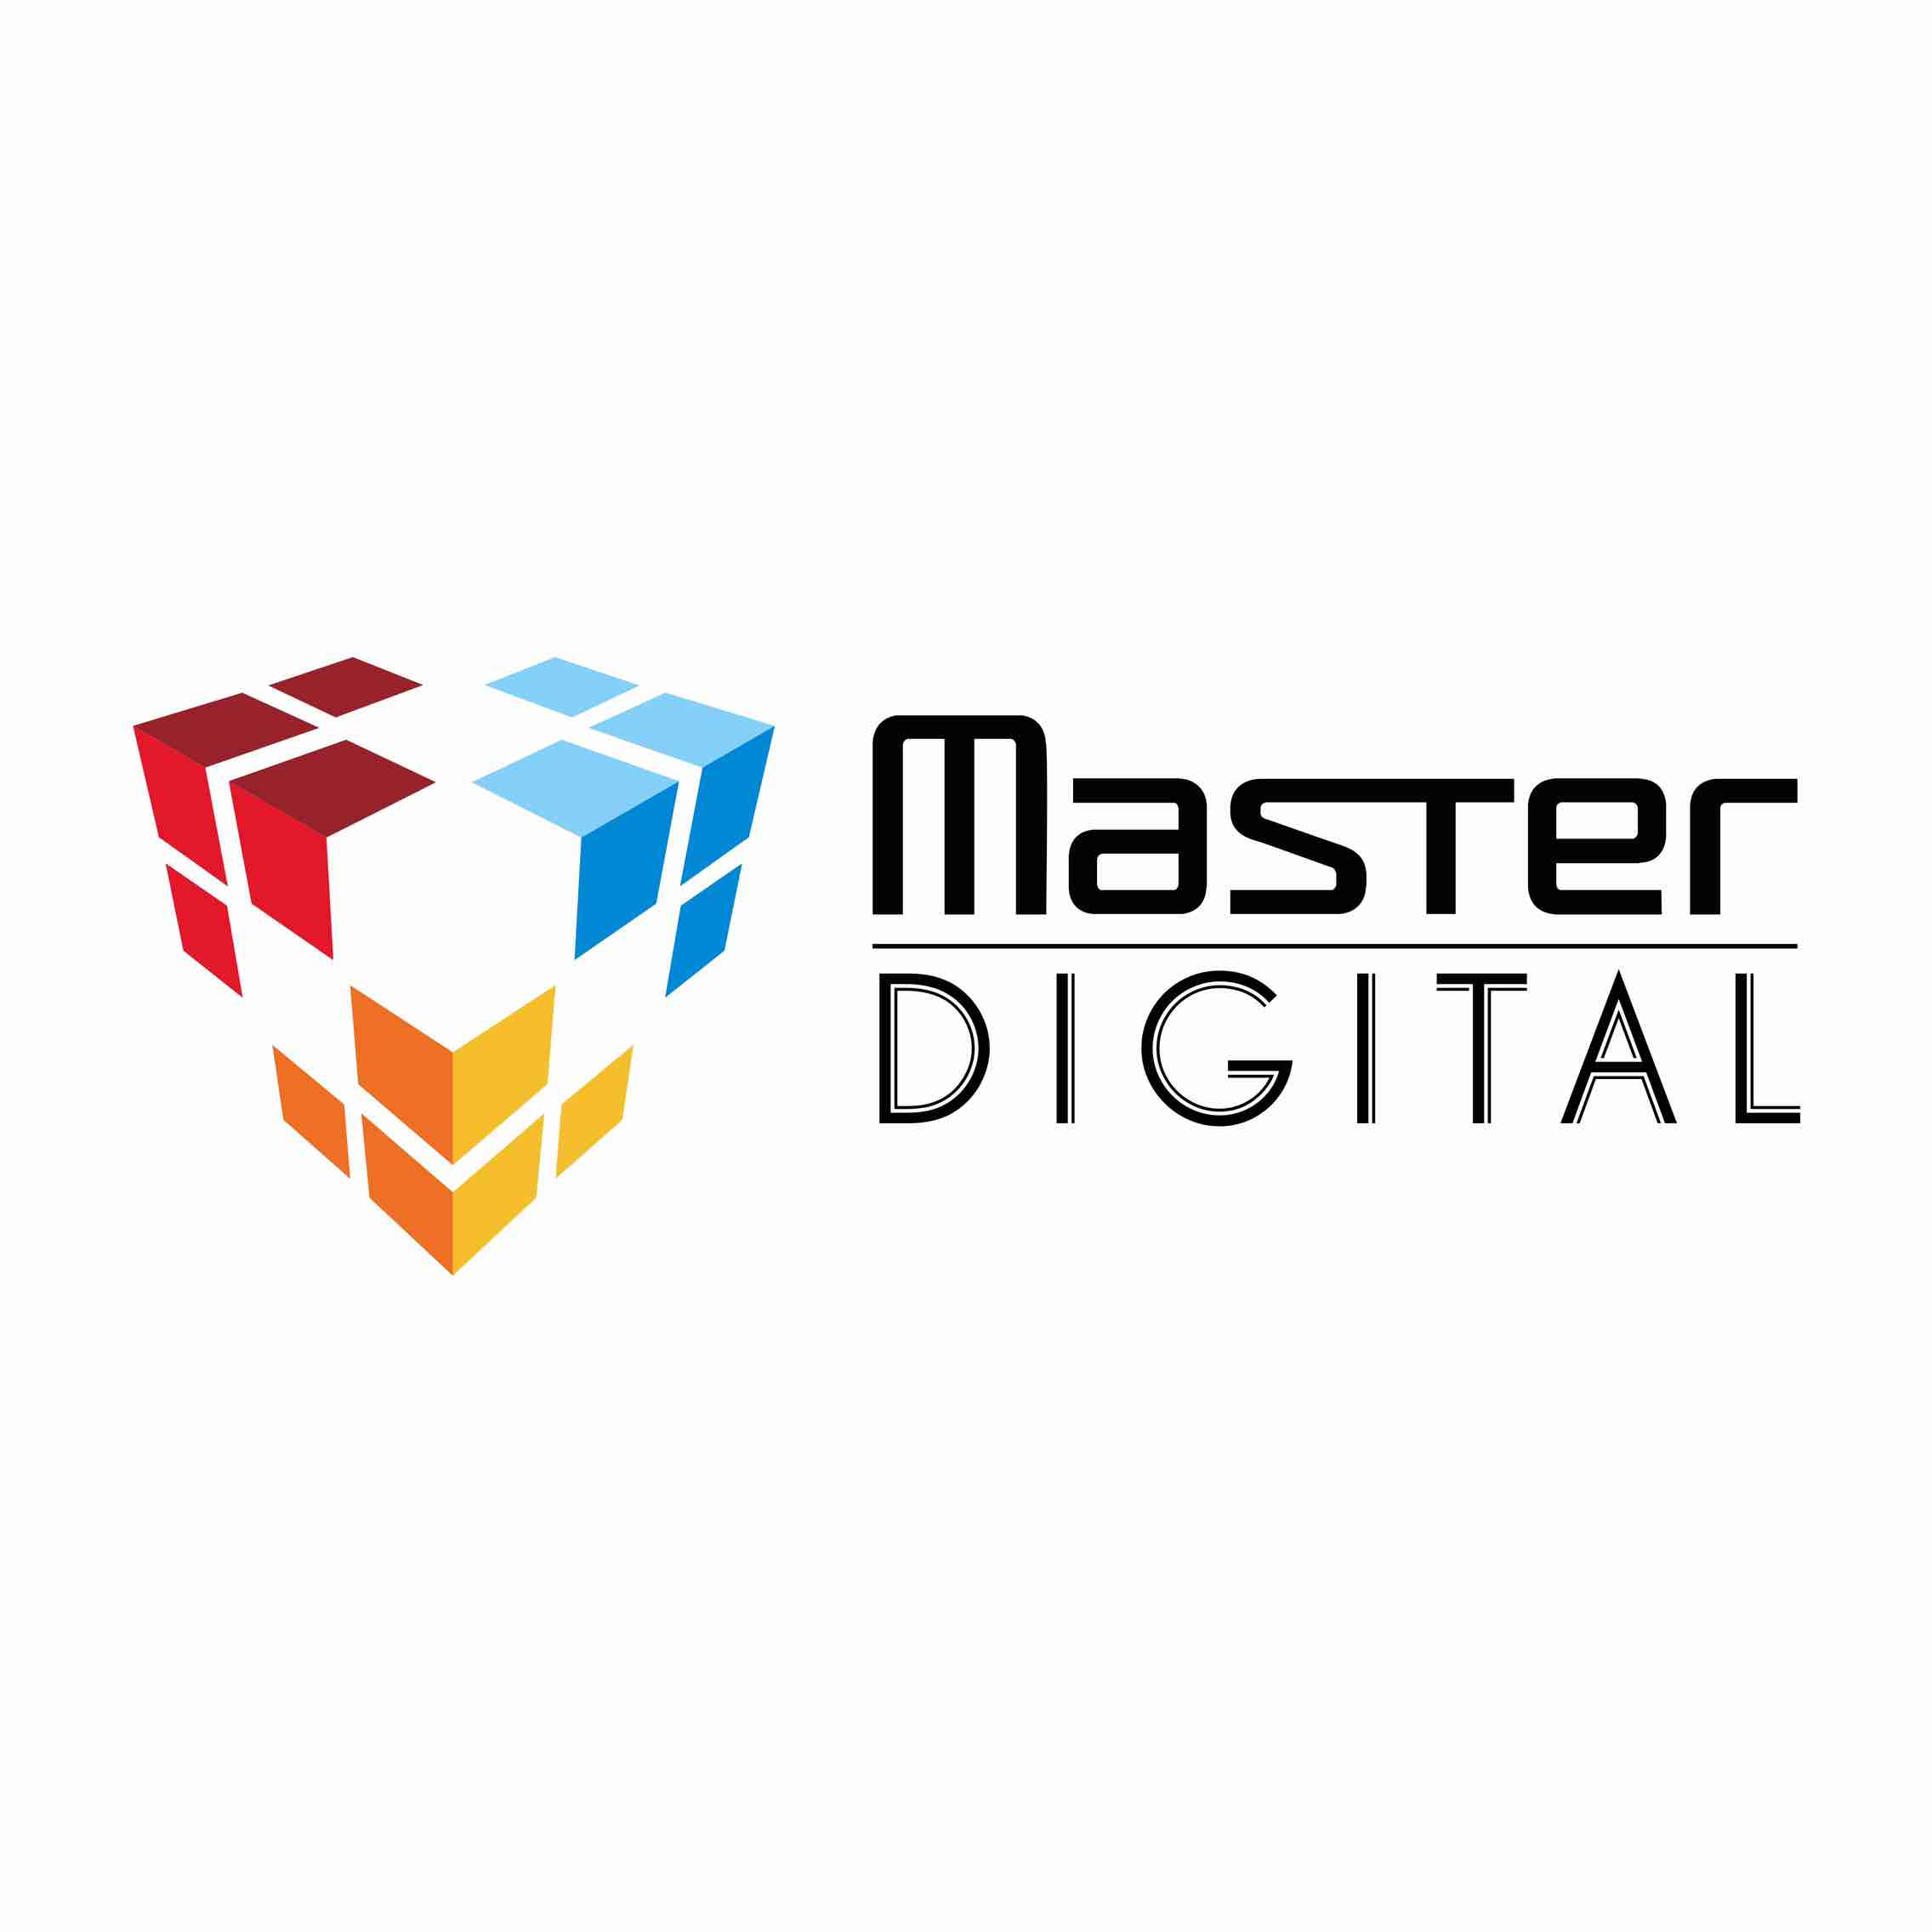 Master Digital - logo